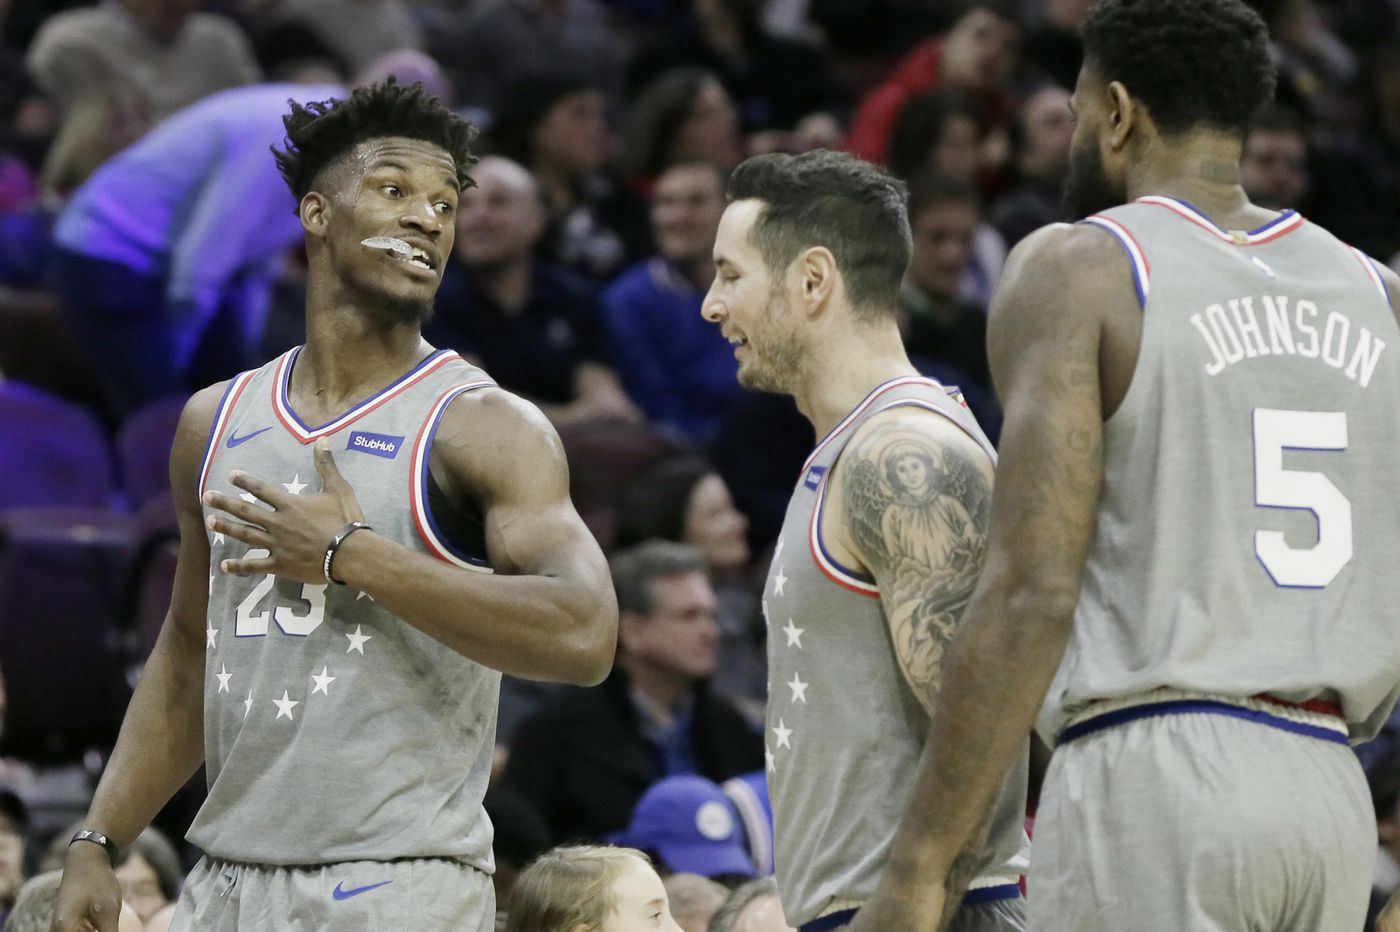 Jimmy Butler using talks with Sixers' teammates to steepen his learning curve on court